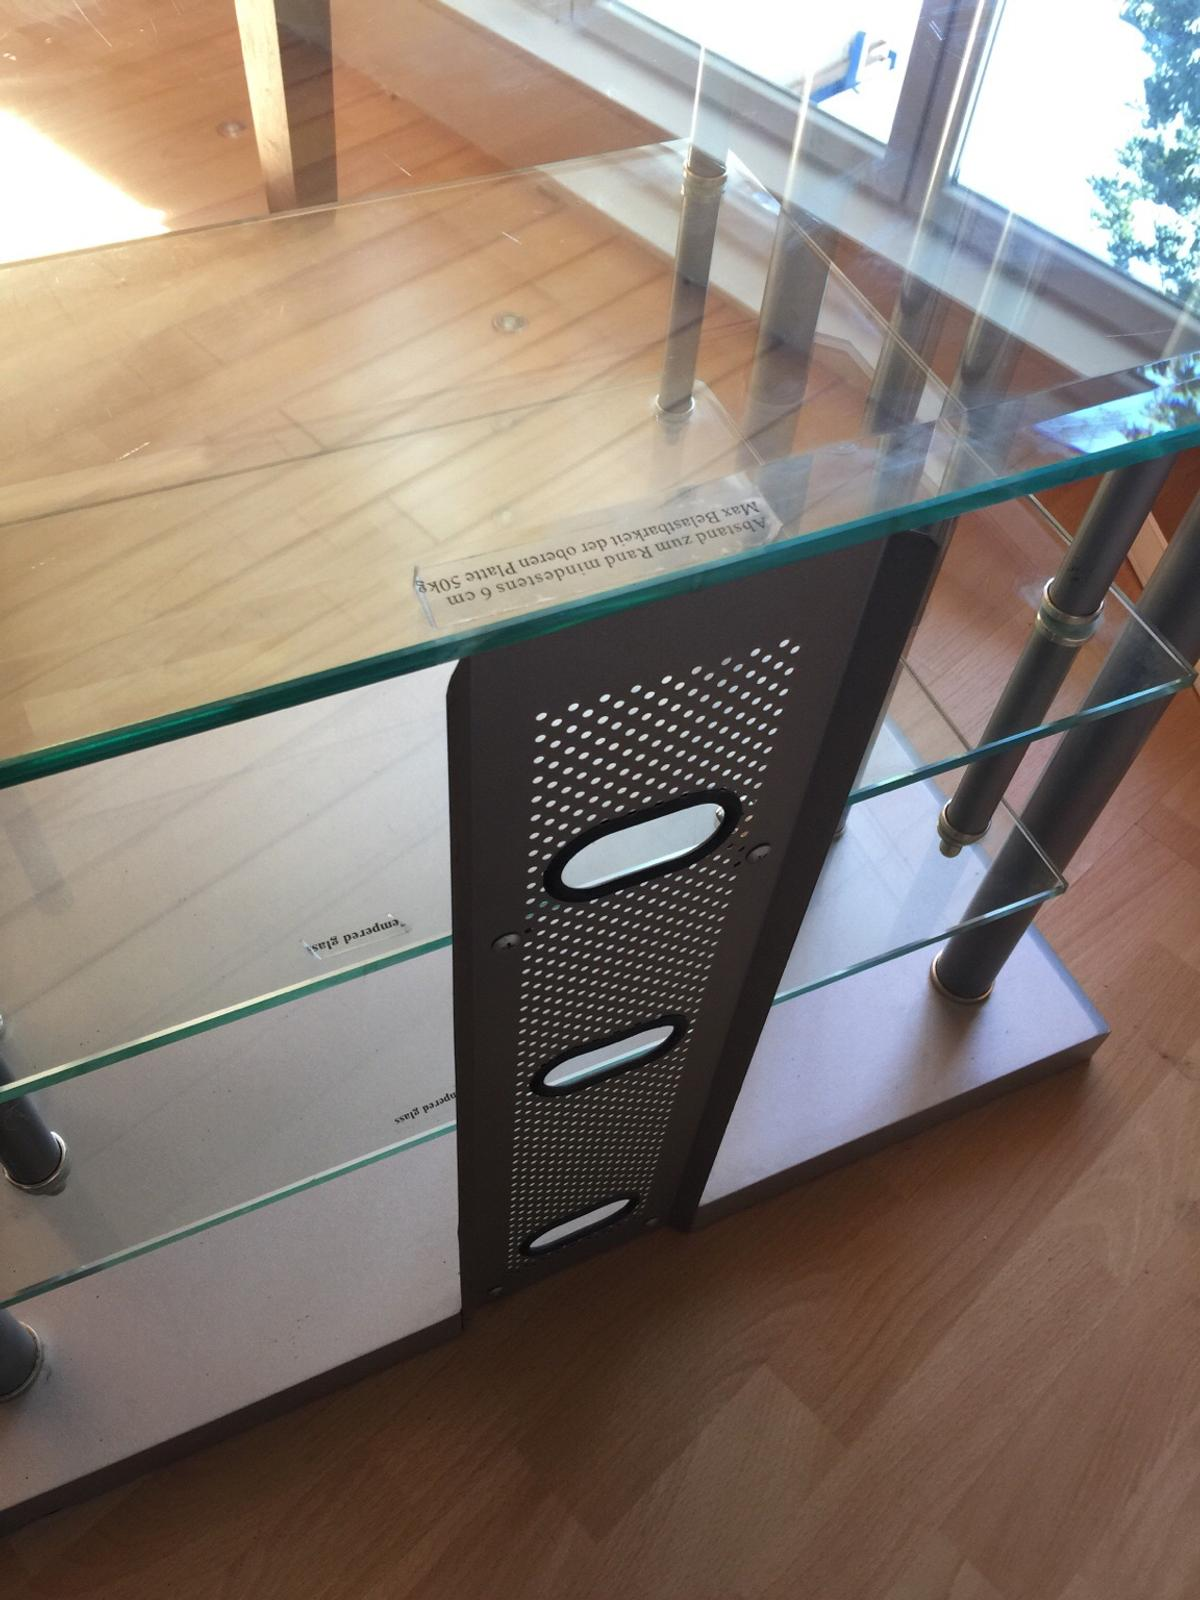 Tv Rack Glas Mit Rollen Tv-rack Glas (bfk-collection) In 68723 Oftersheim For €1.00 For Sale | Shpock